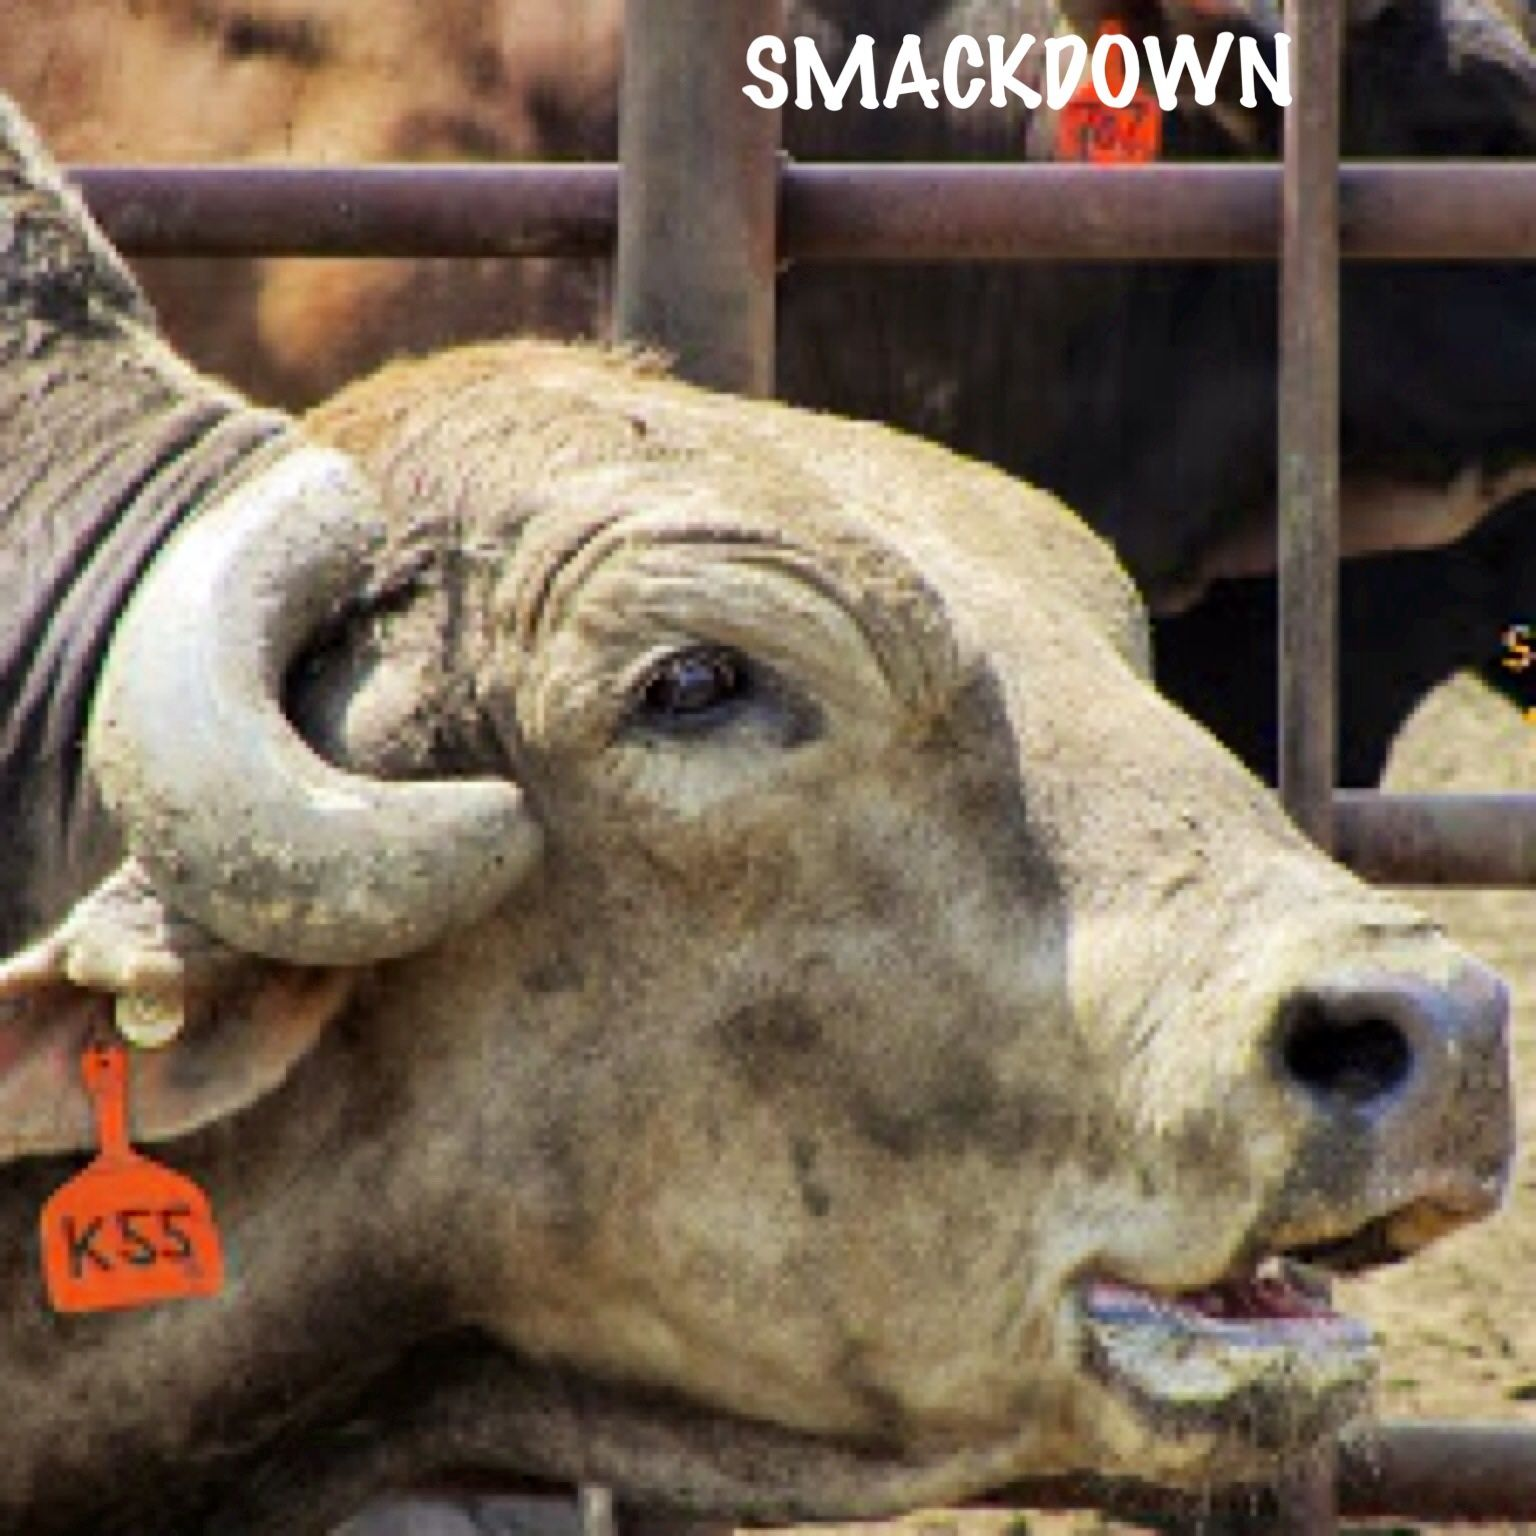 Smackdown Is A Good Looking Bull From Chad Berger Bucking